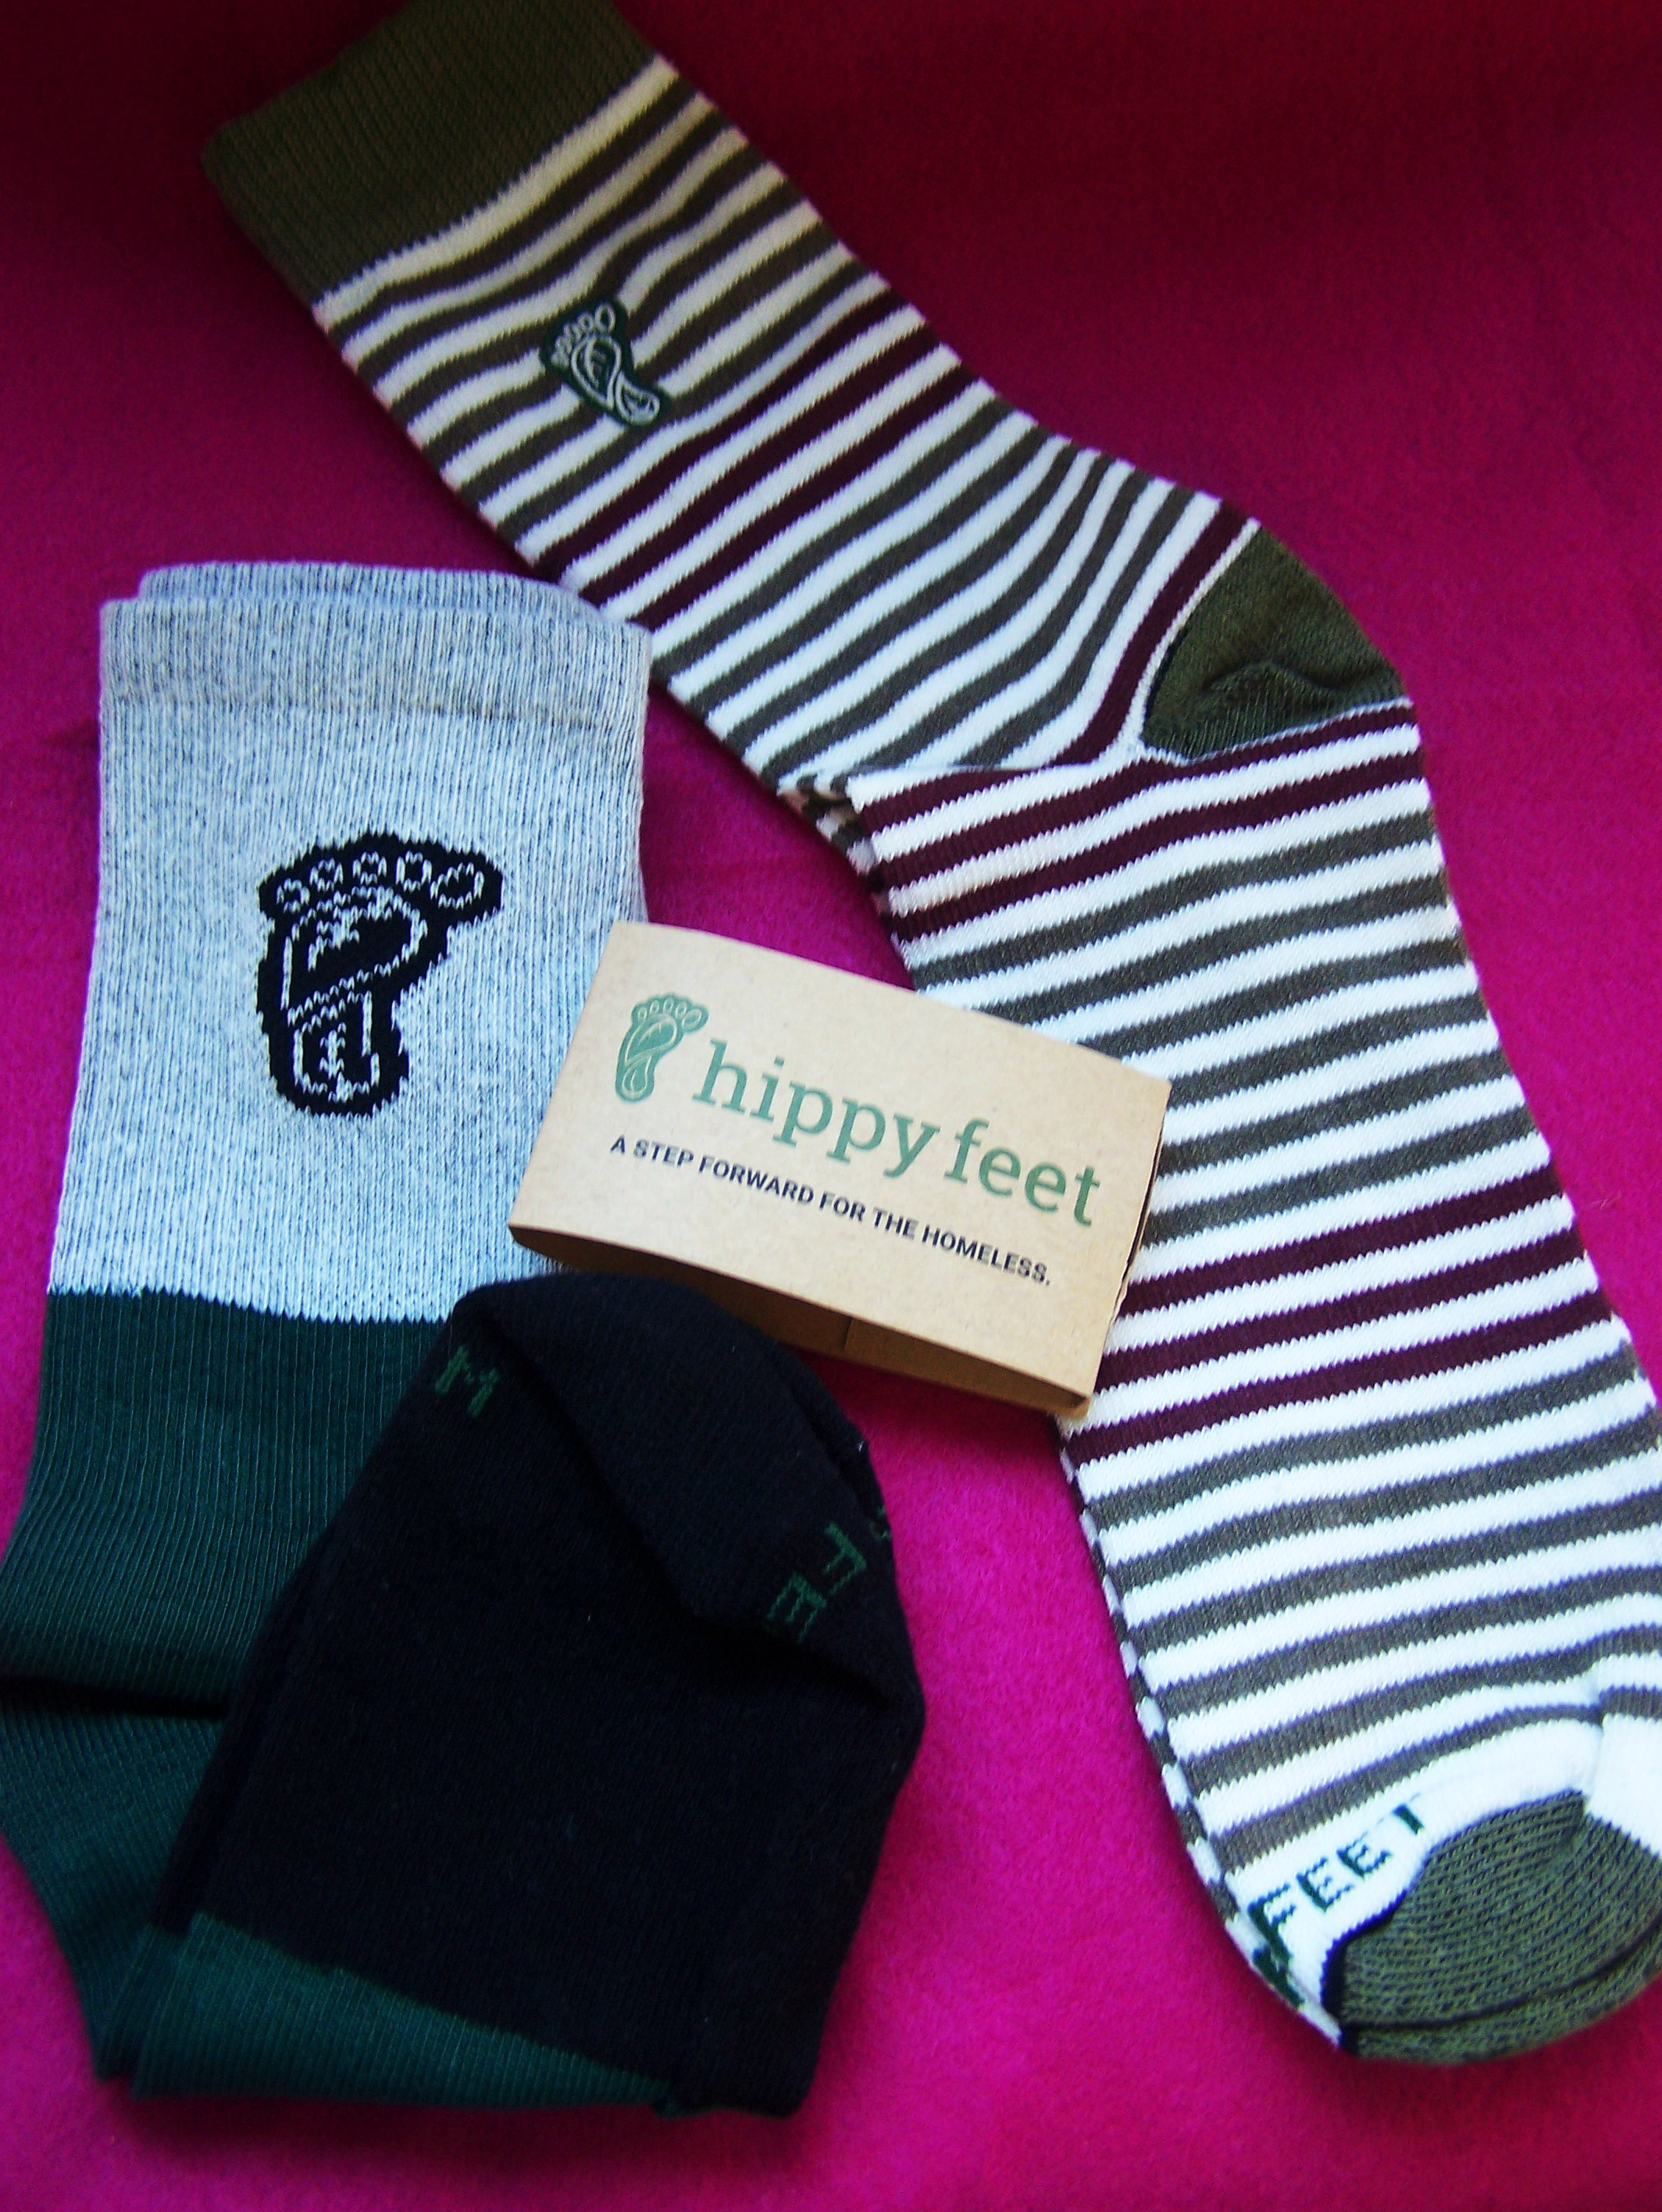 hippy feet socks souls sock good dees homeless helping fashion shoes footwear pr frienly blogger blog post clothes charity stripes striped cute mae in usa eco-friendly green